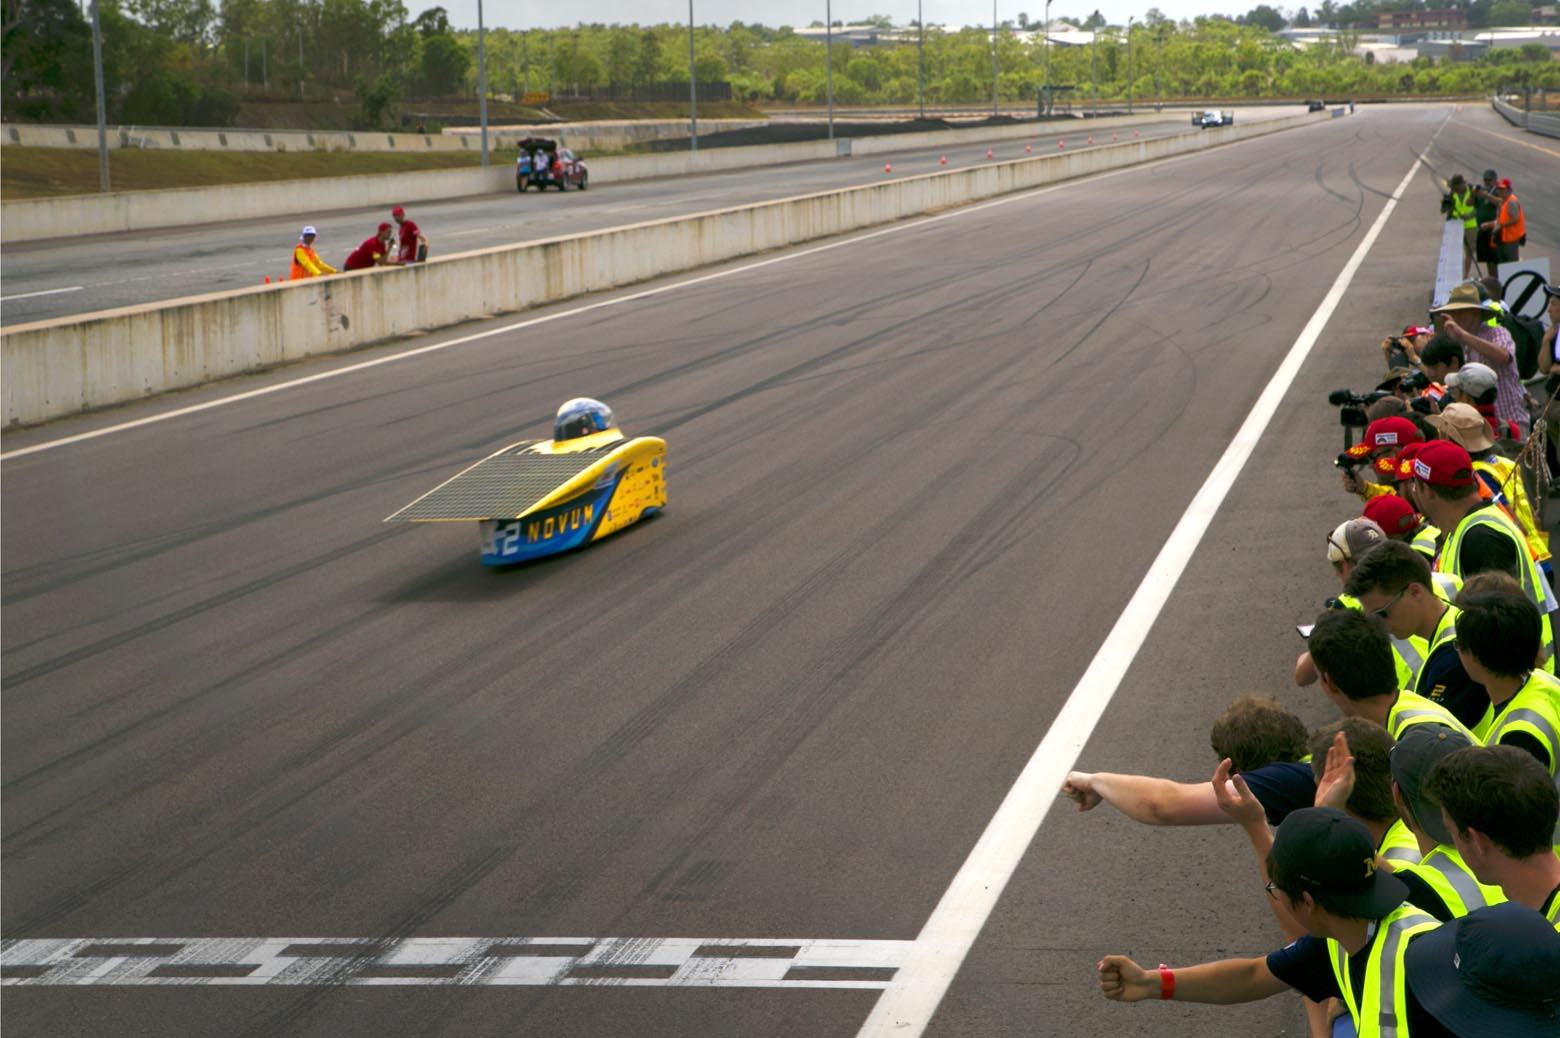 Novum completes the hot lap as the team cheers on the sidelines.